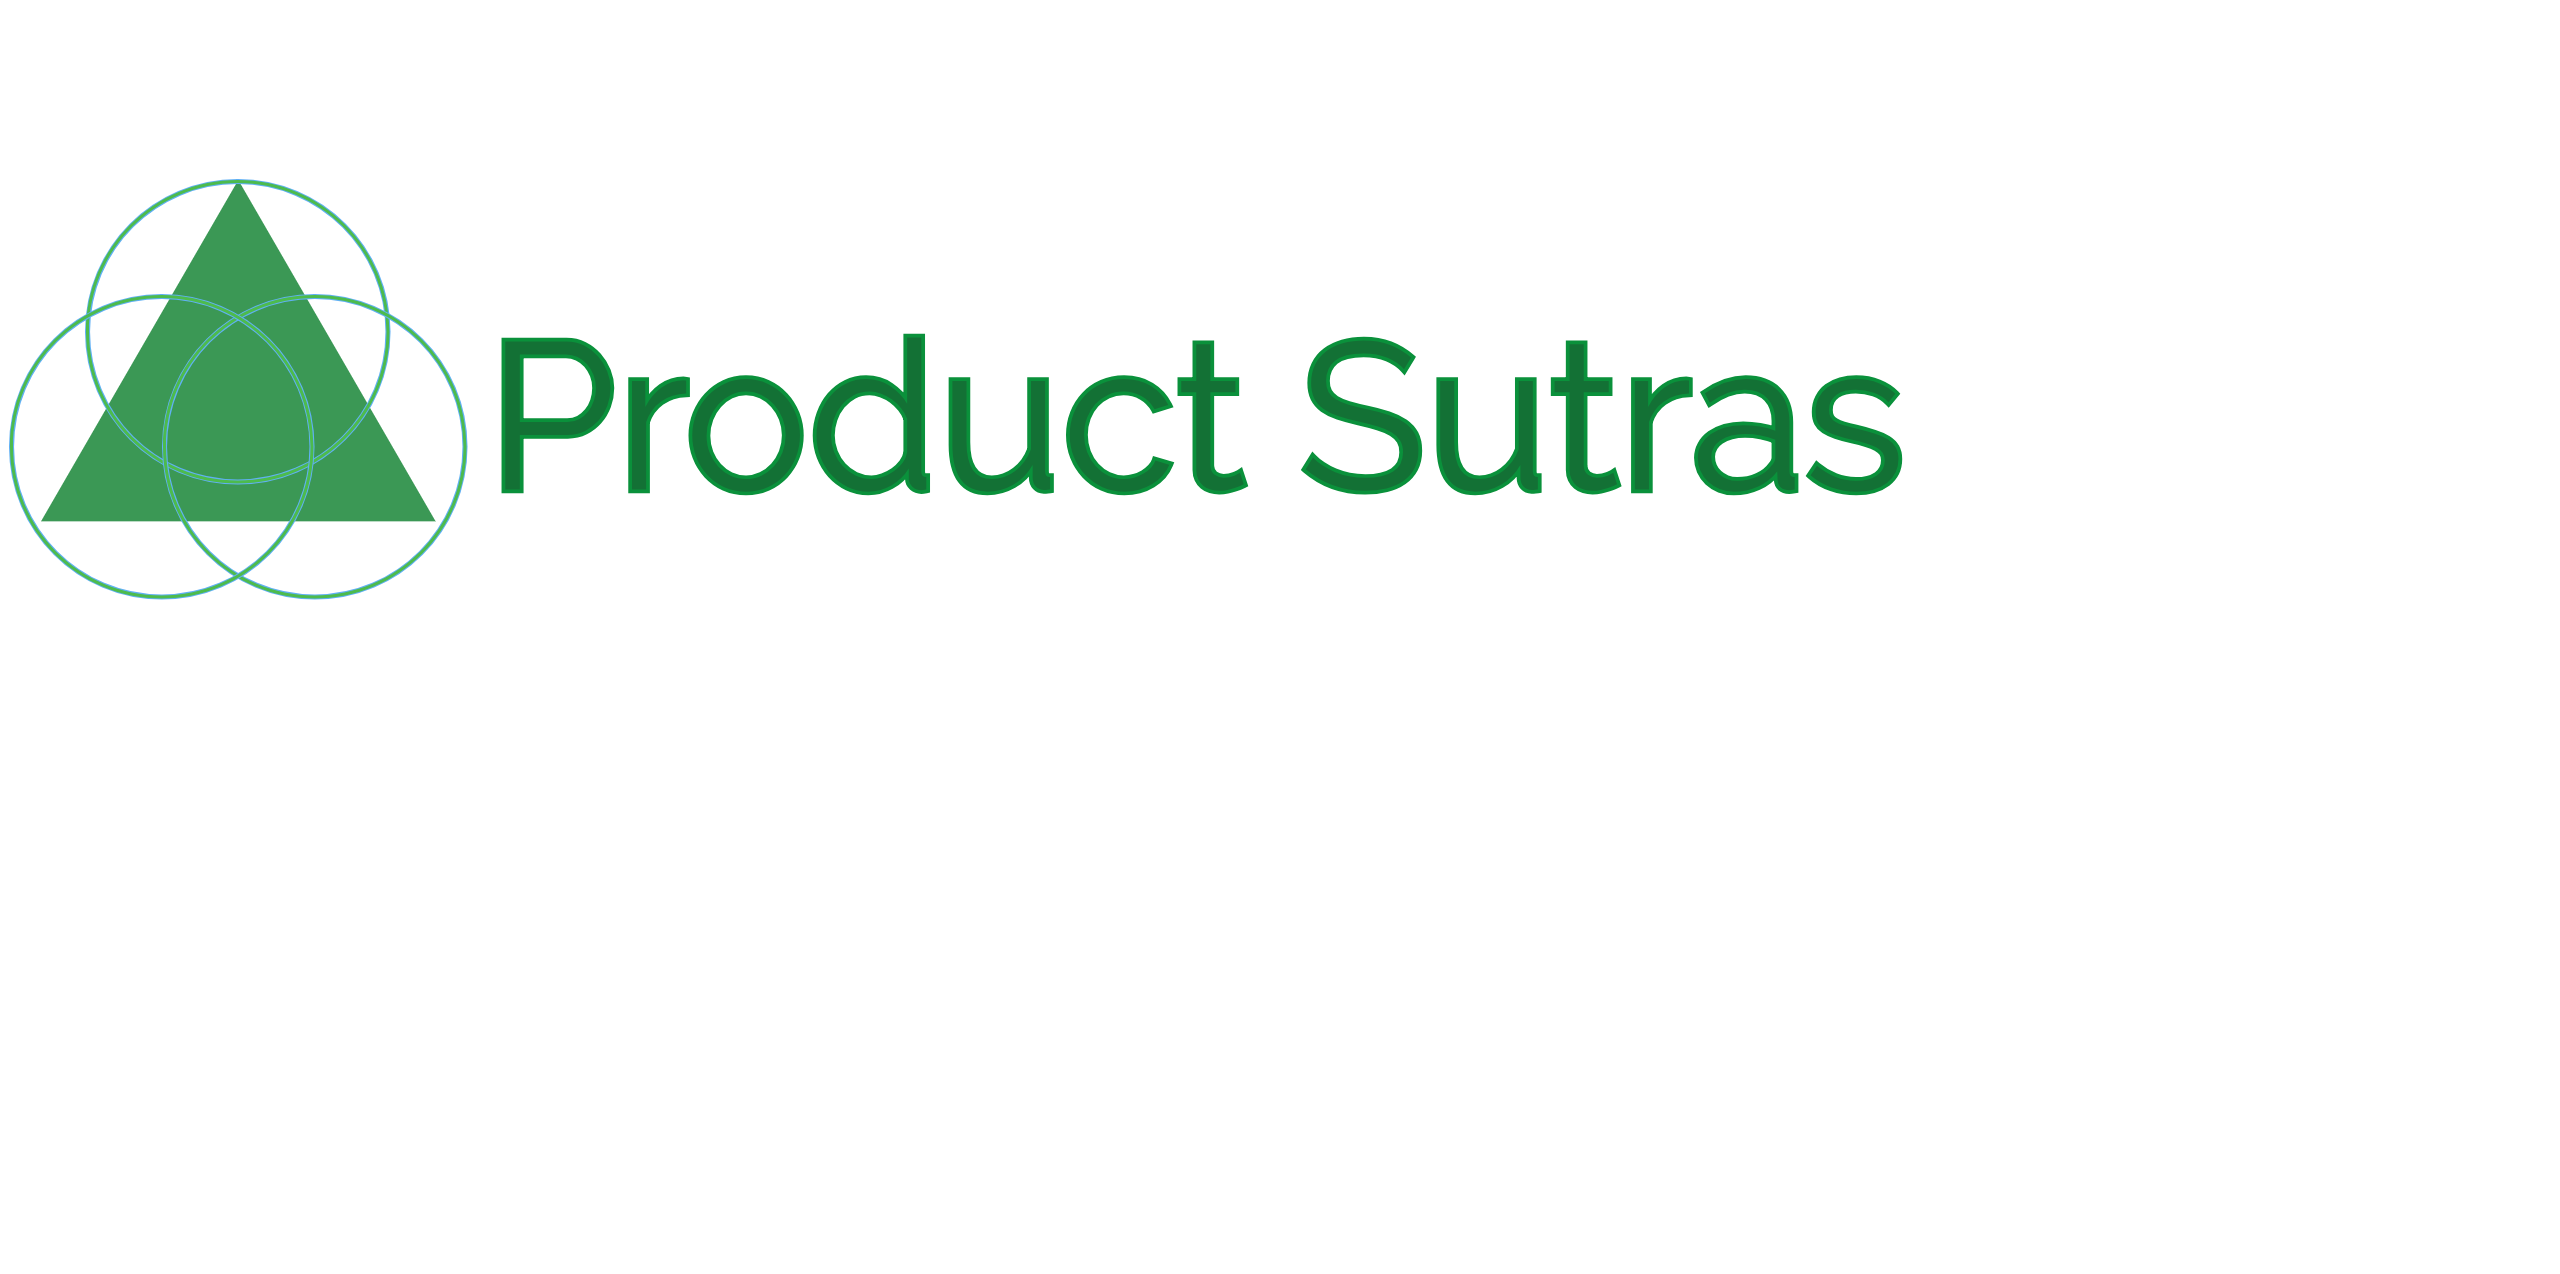 Product Sutras